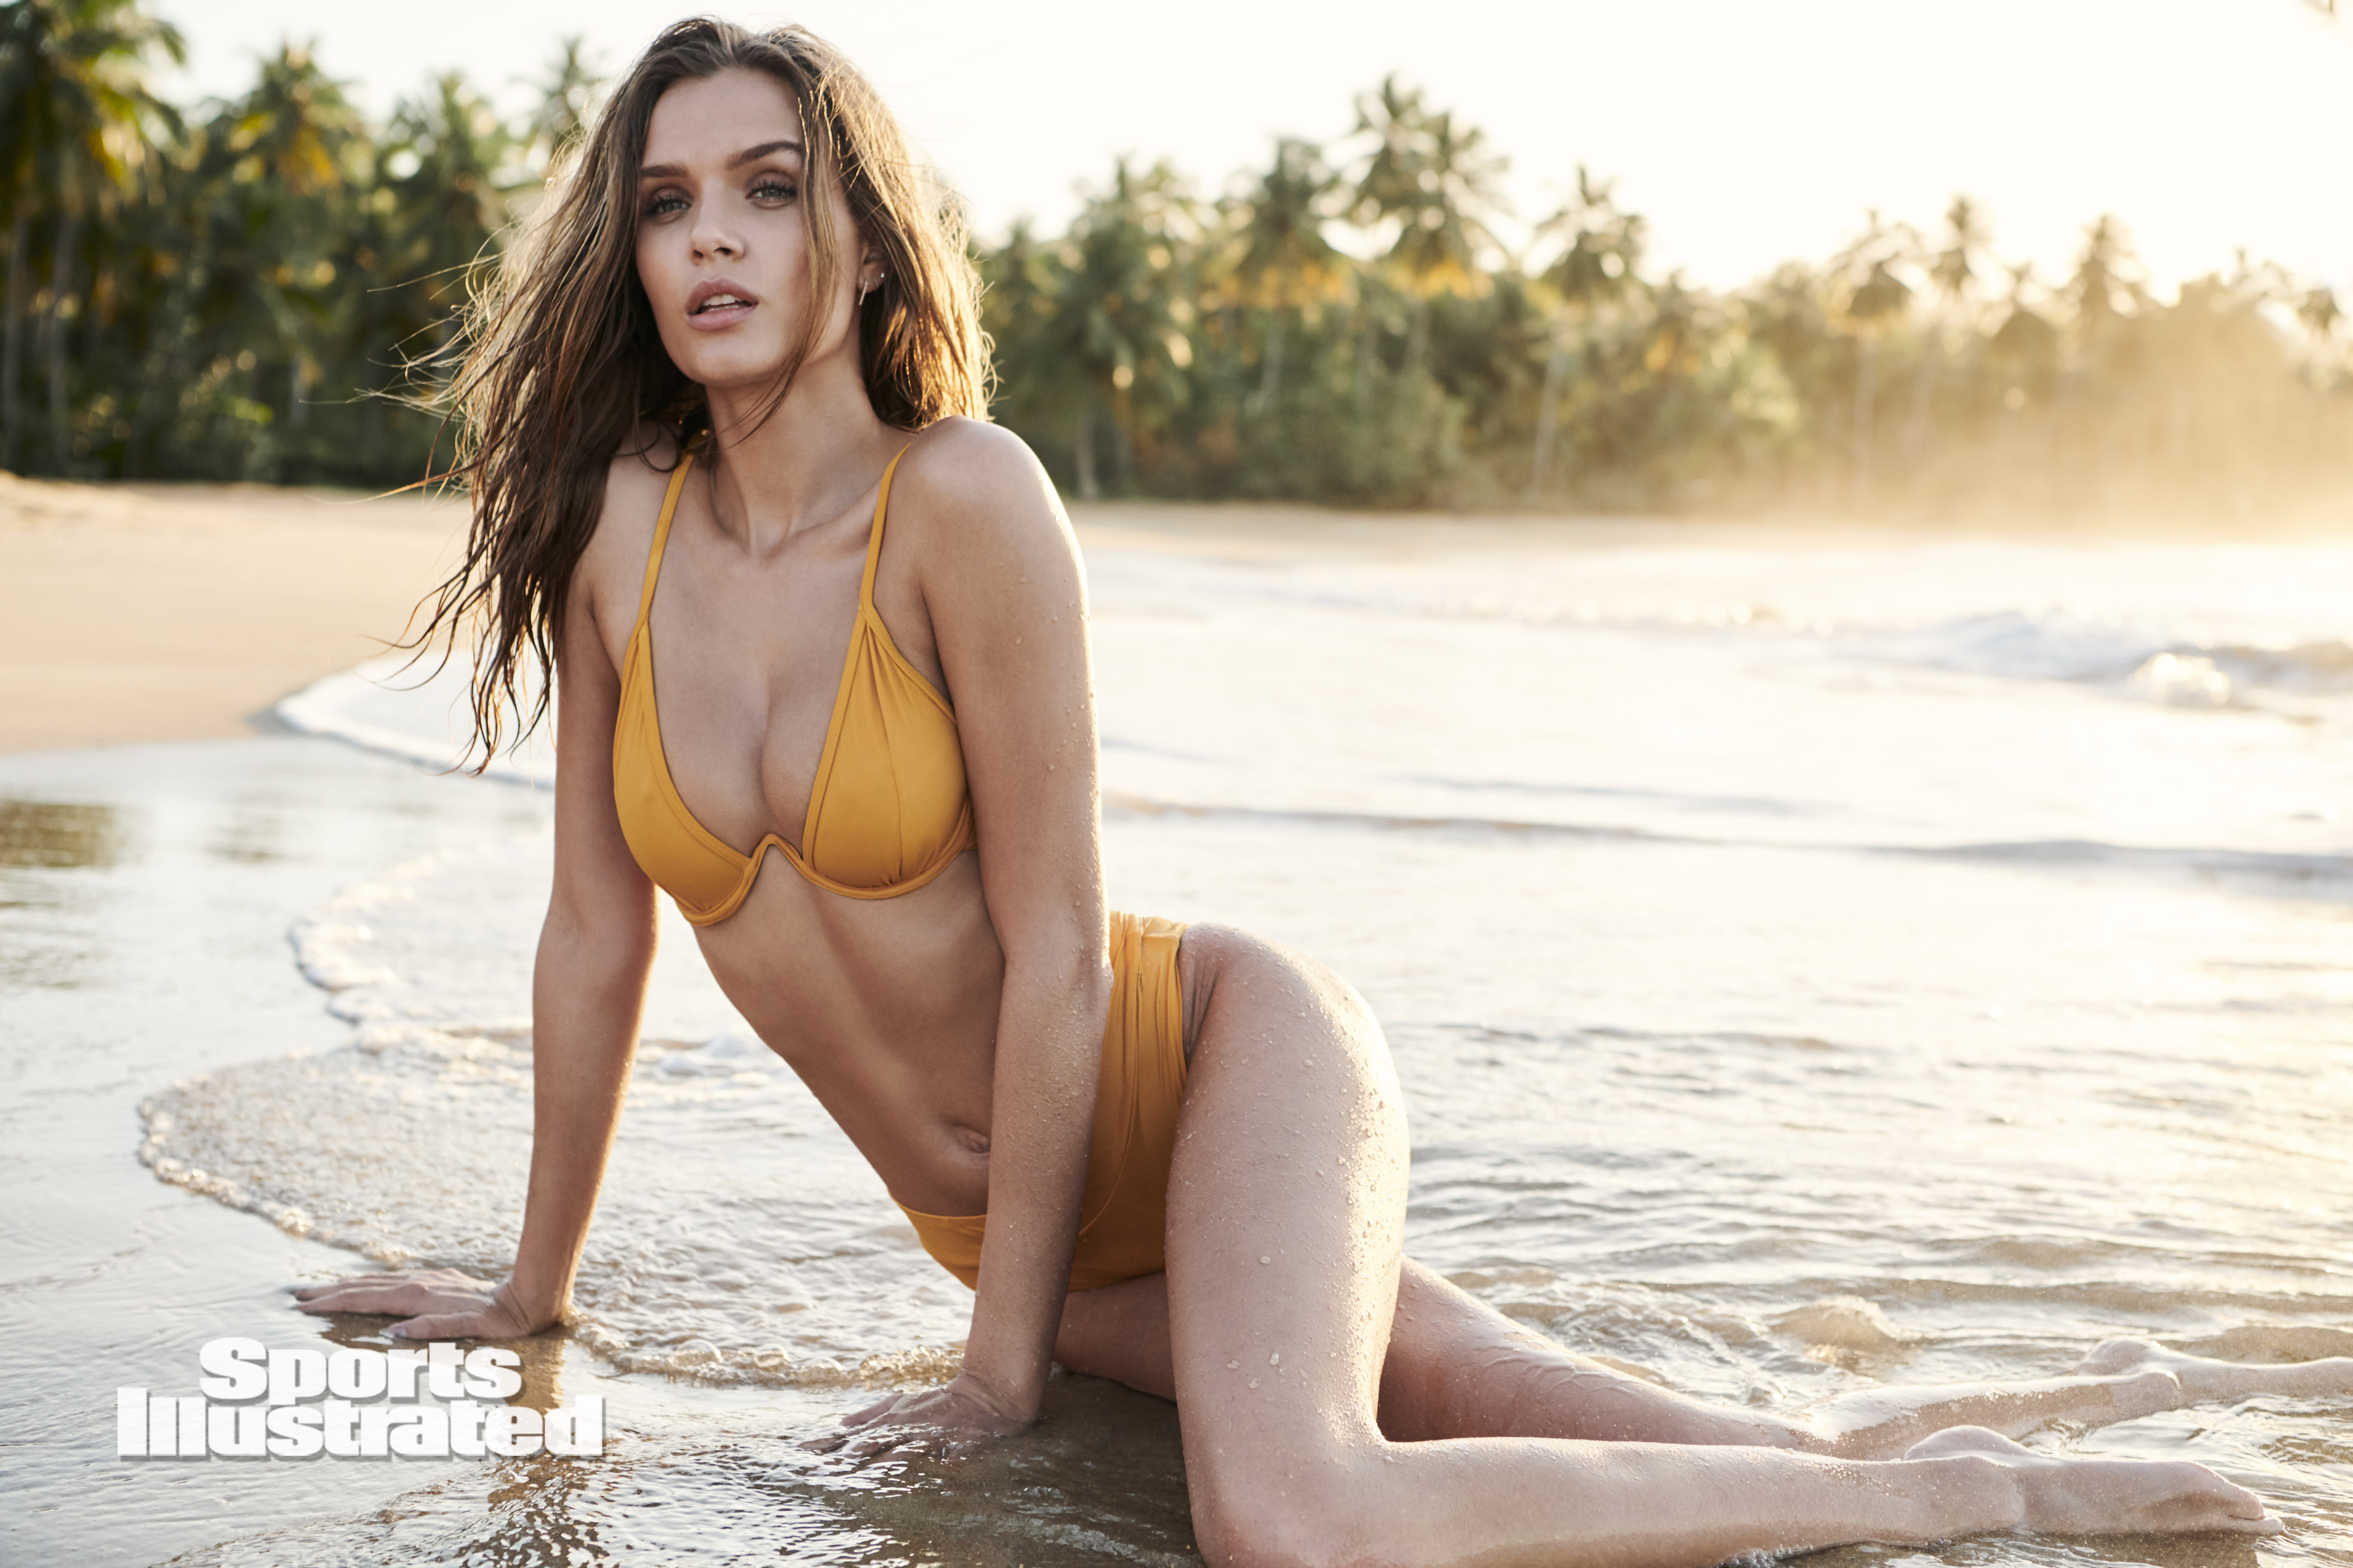 Josephine Skriver posing for Sports Illustrated Swimsuit 2020, on sale now. (Photo: Kate Powers/Sports Illustrated)